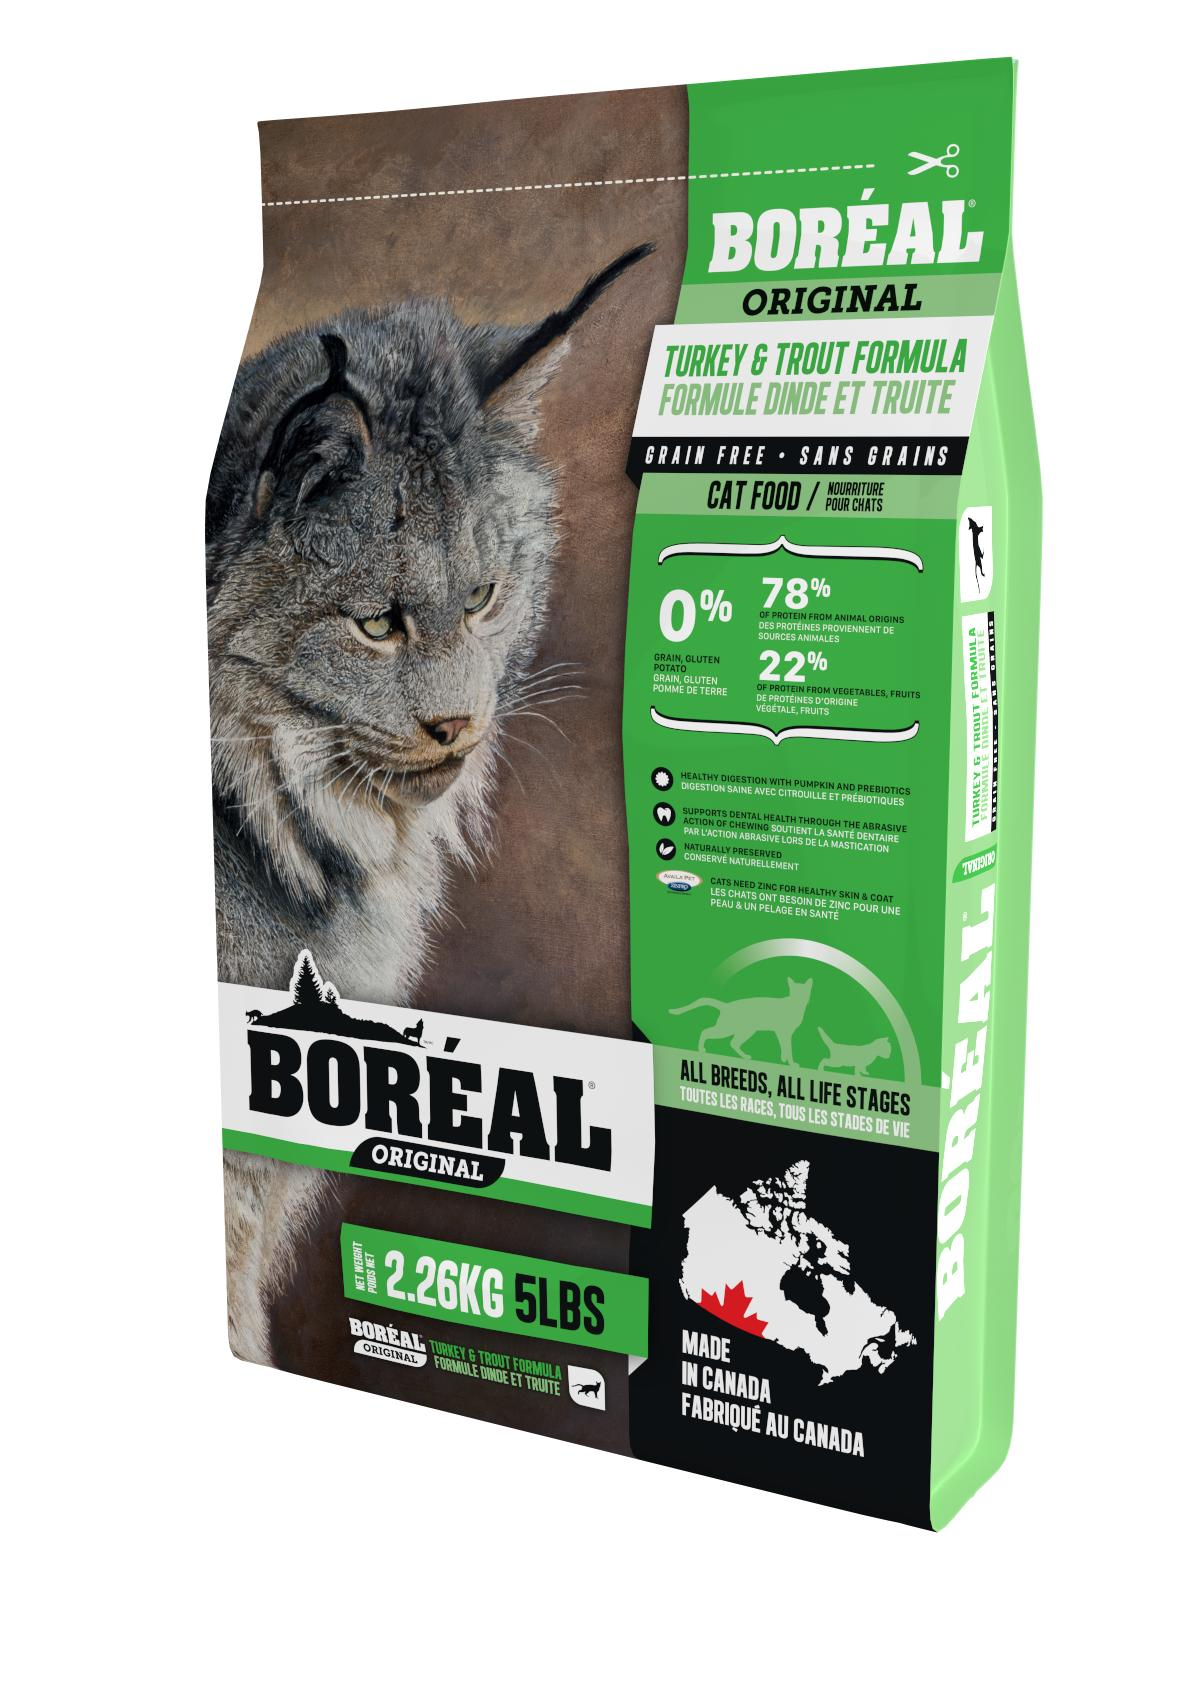 Boreal Original, All Breeds, Turkey and Trout Formula Dry Cat Food Image